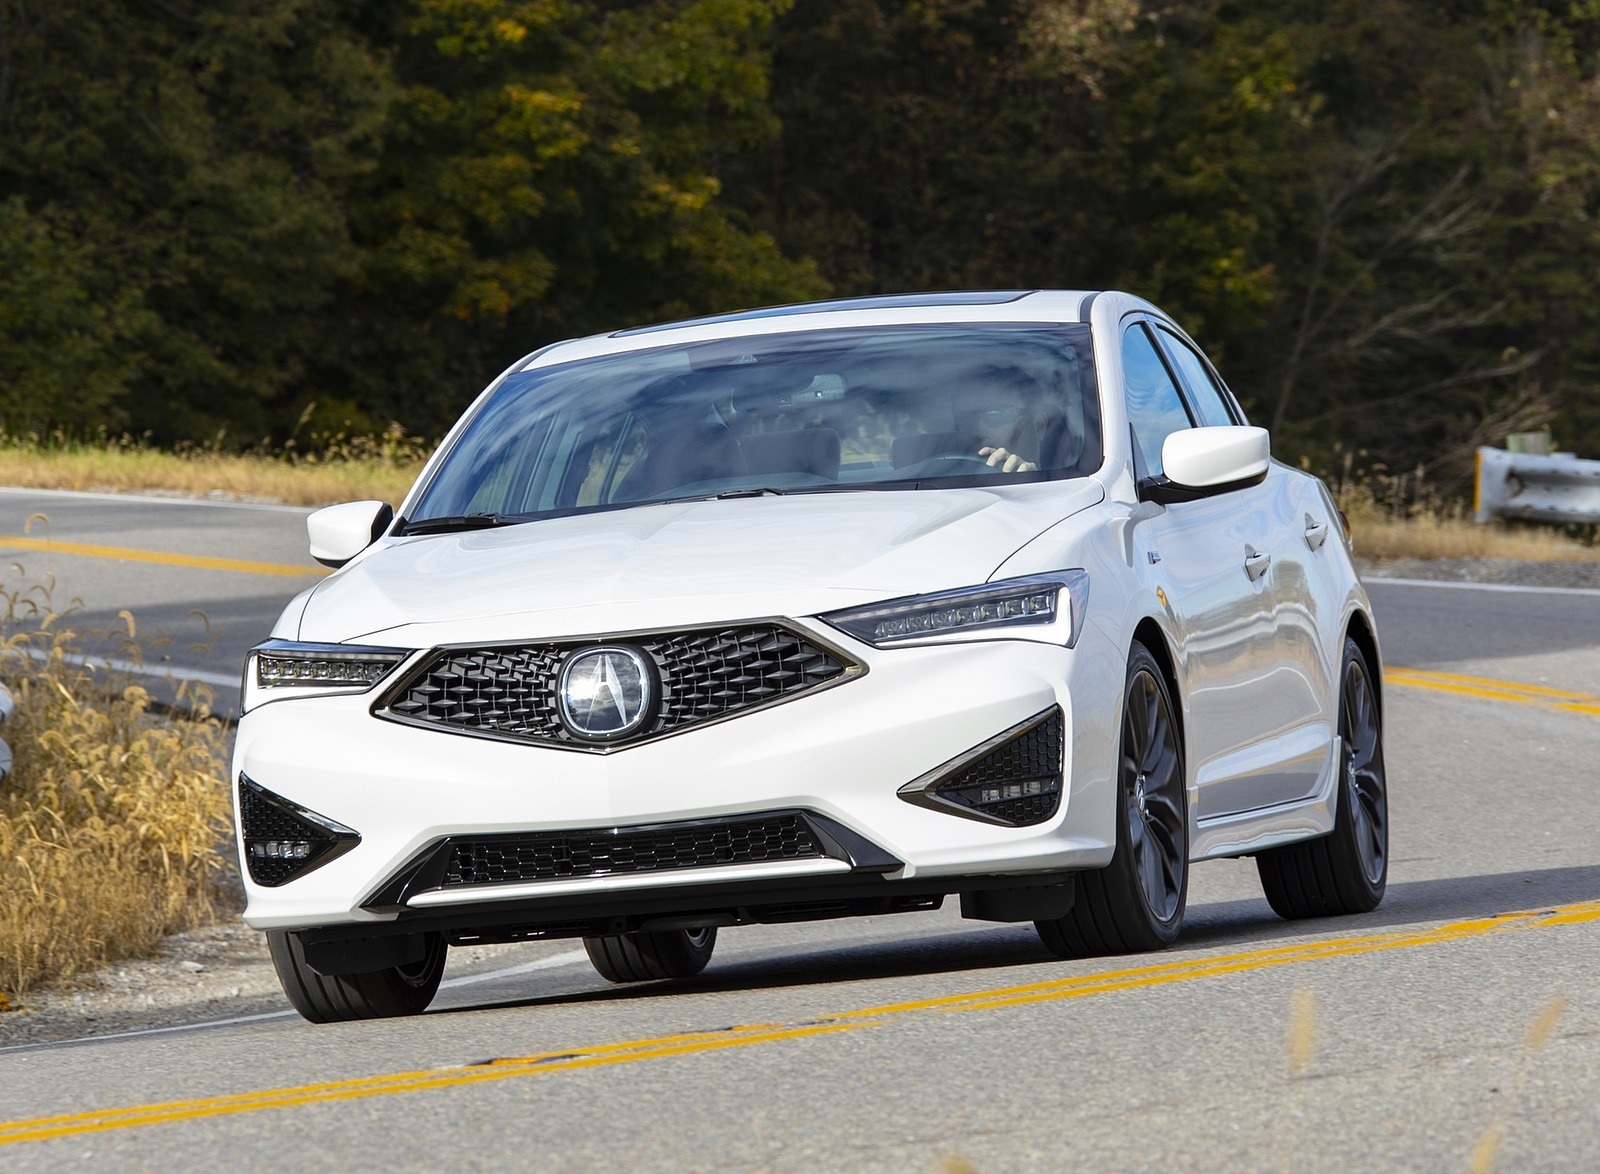 2020 Acura ILX A-Spec Front Wallpapers (9)